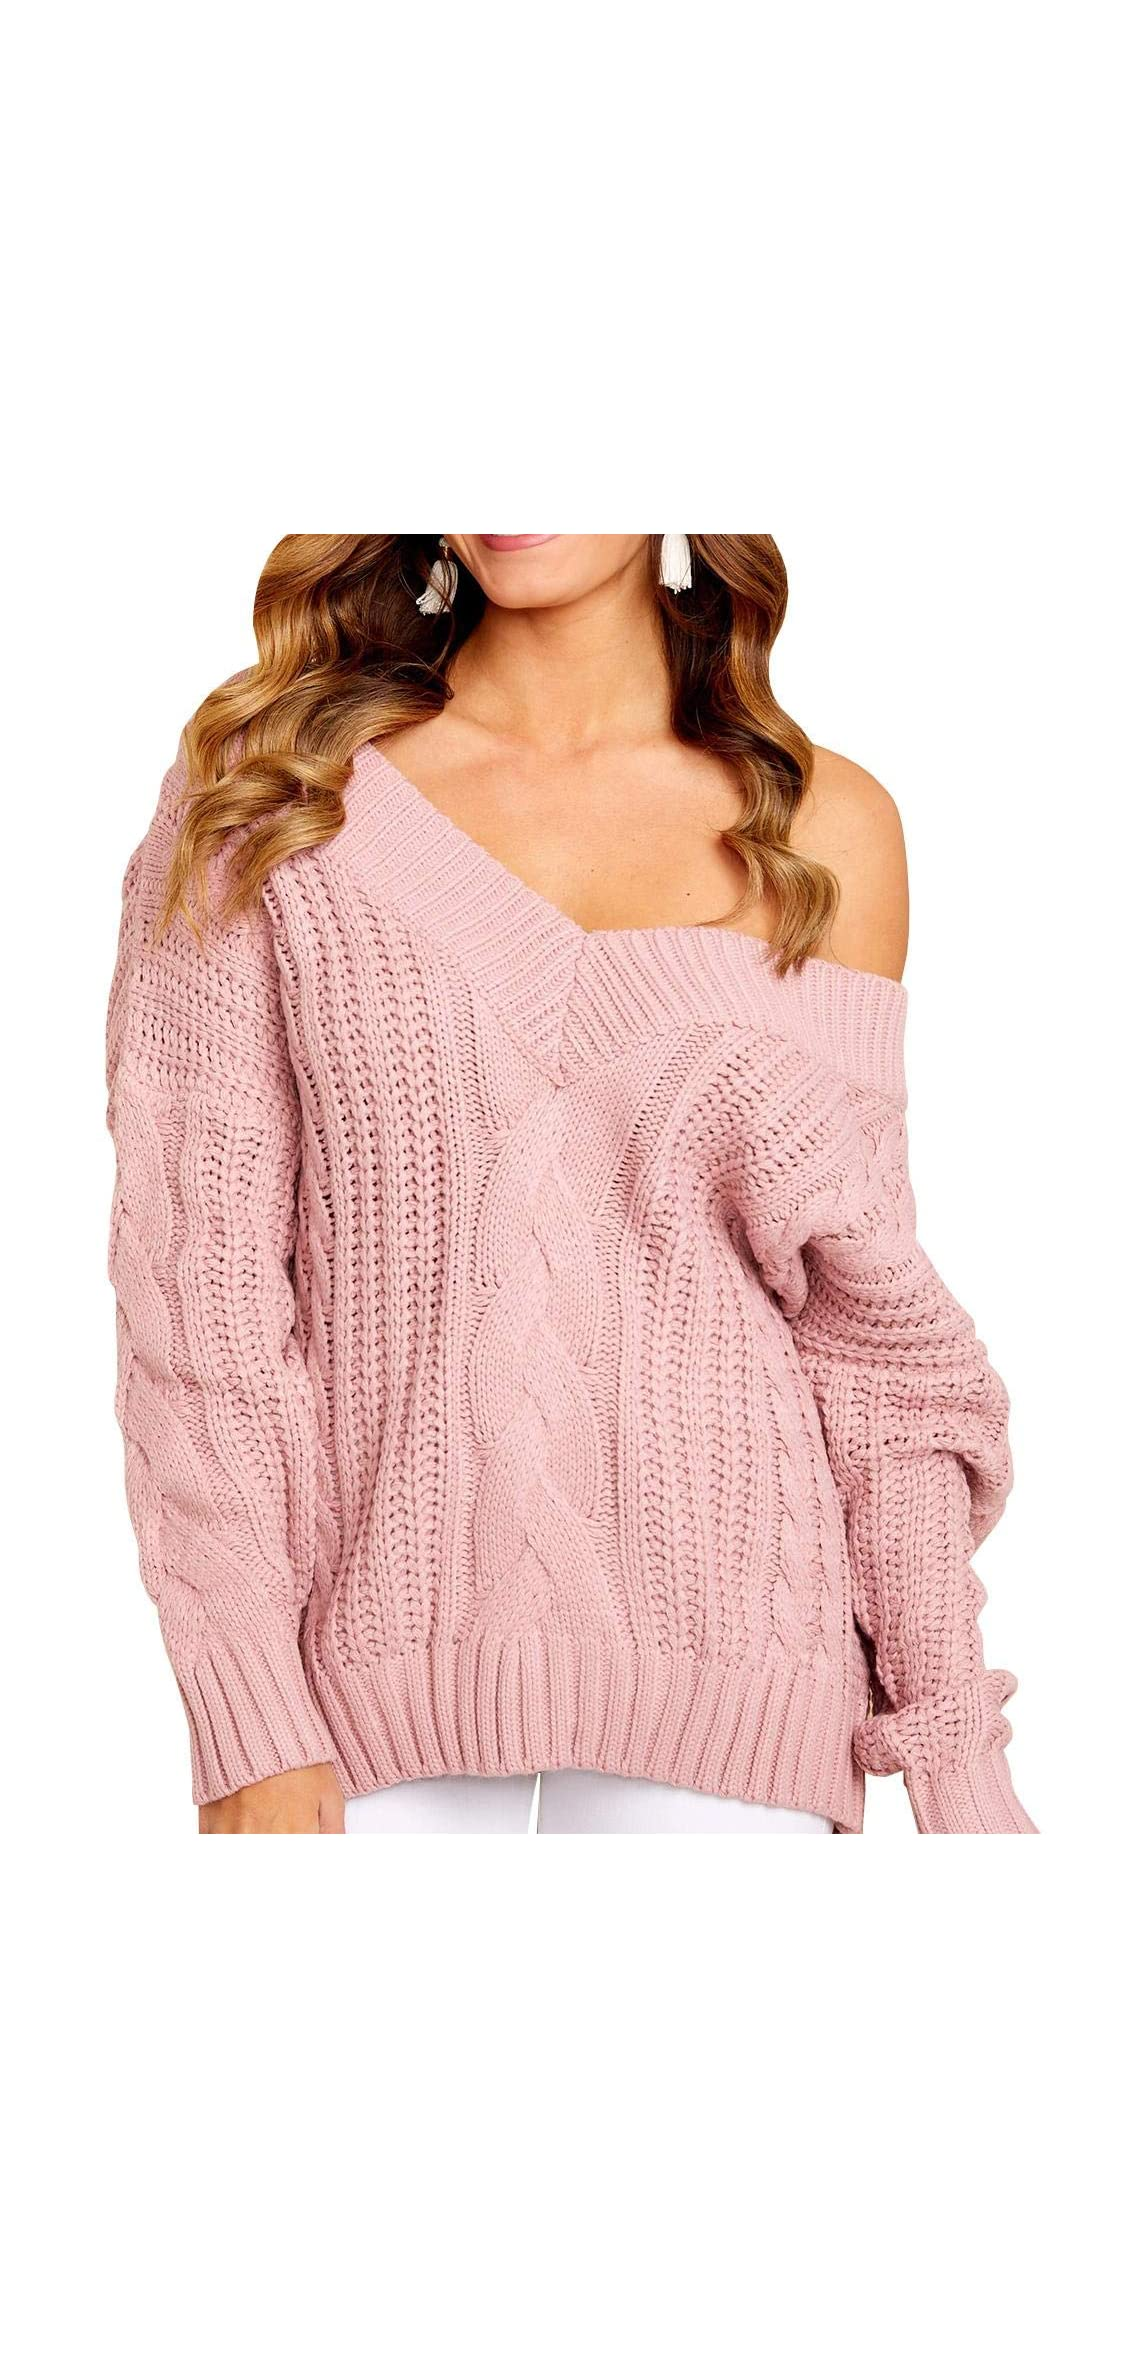 Womens V Neck Cable Knit Sweater Off Shoulder Long